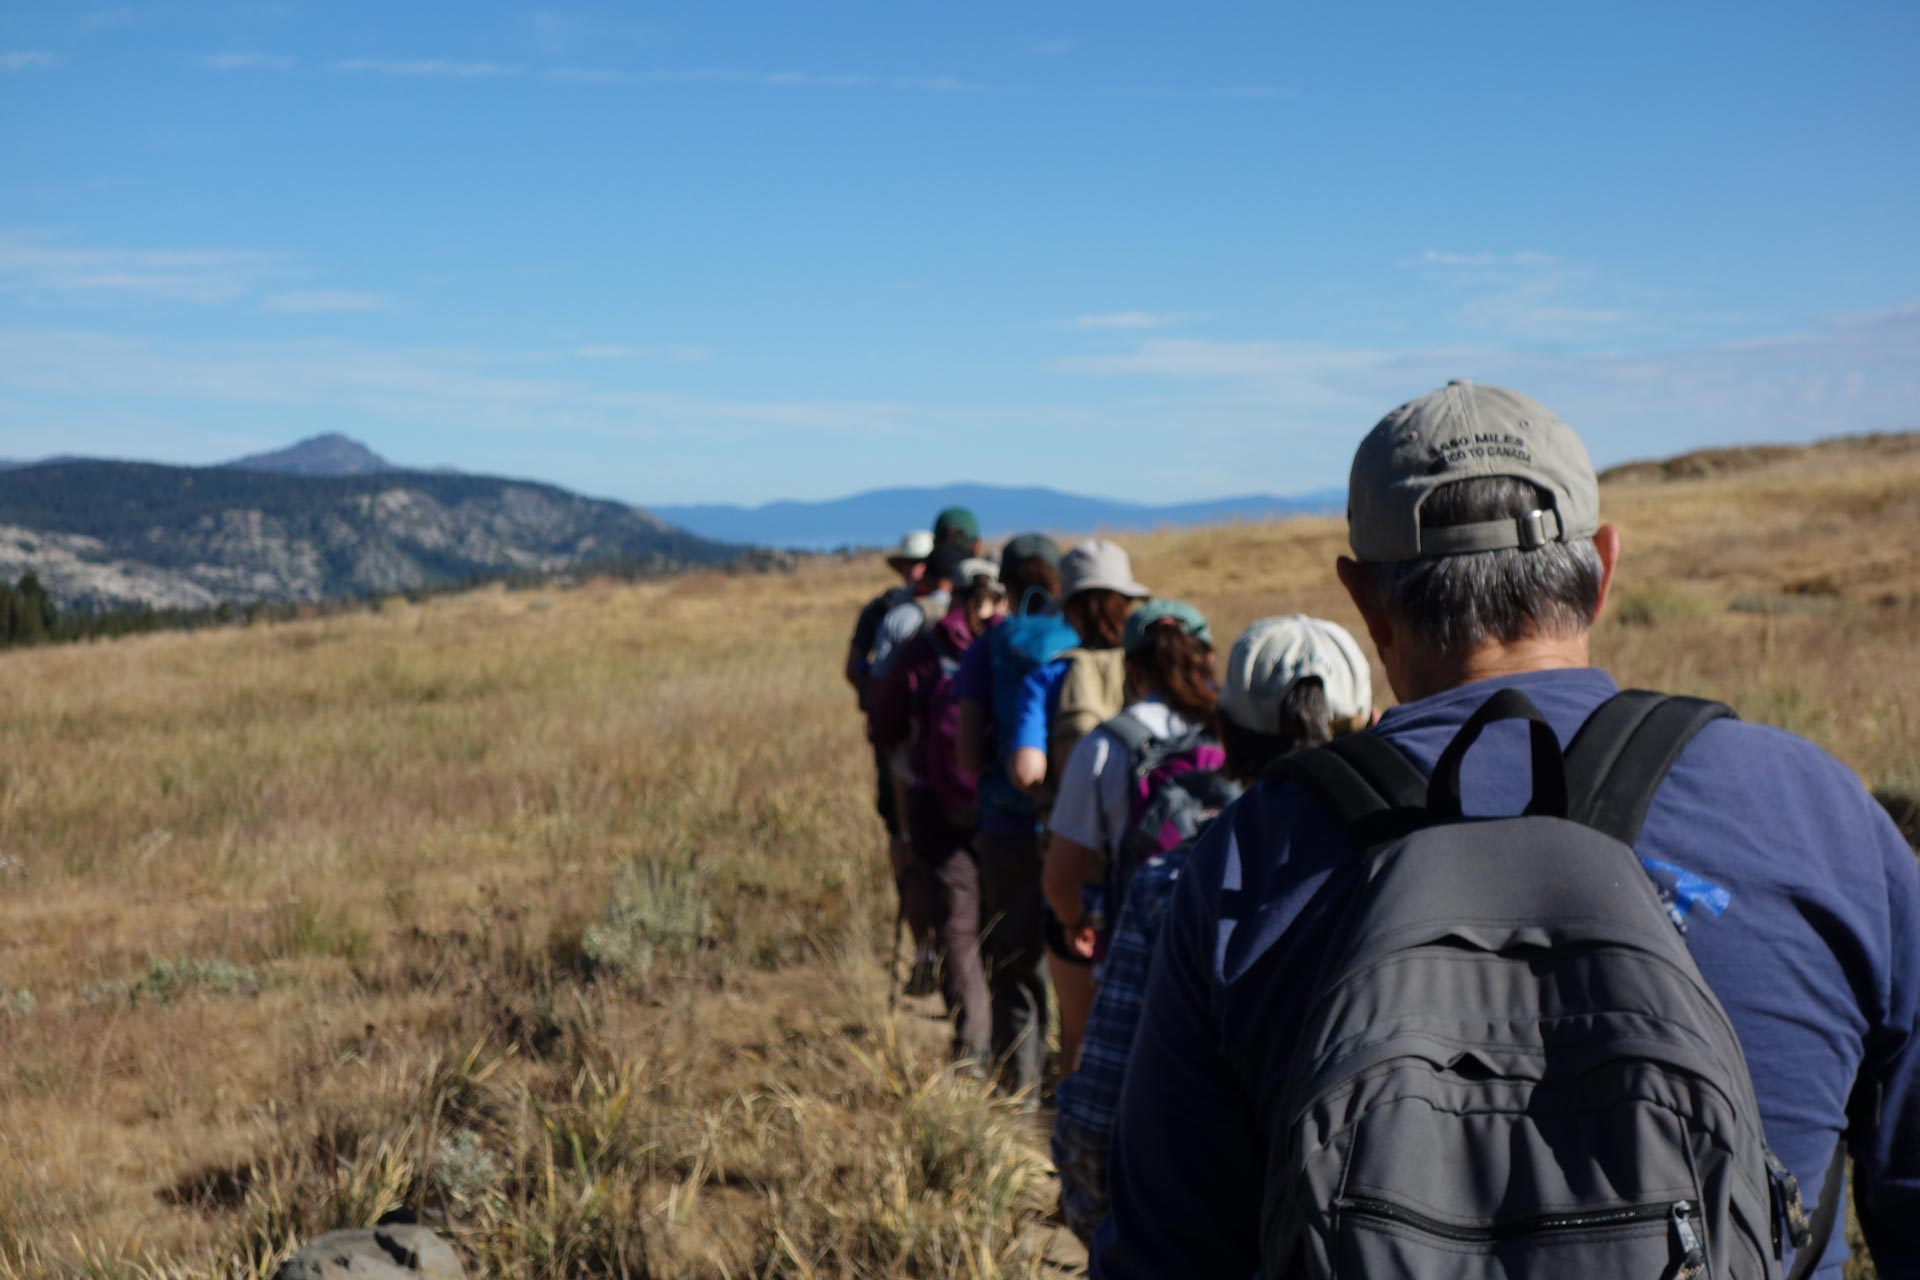 Joining a hiking club is a great way to get out and meet new people that share your passion.